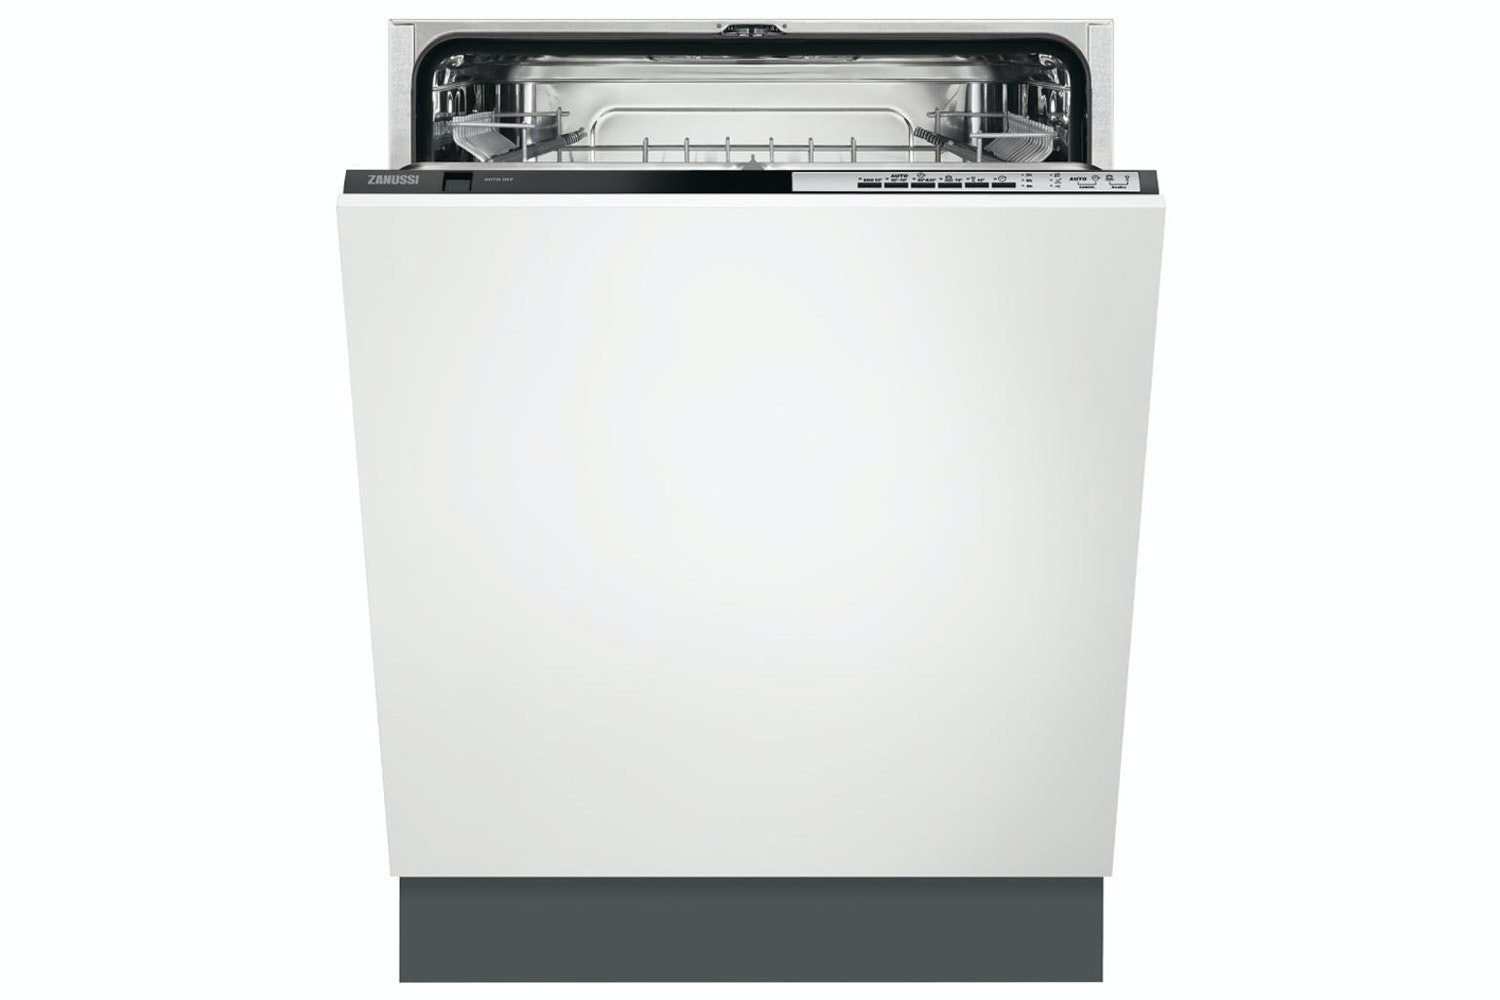 Zanussi 13 Place Fully Integrated Dishwasher | ZDT24004FA